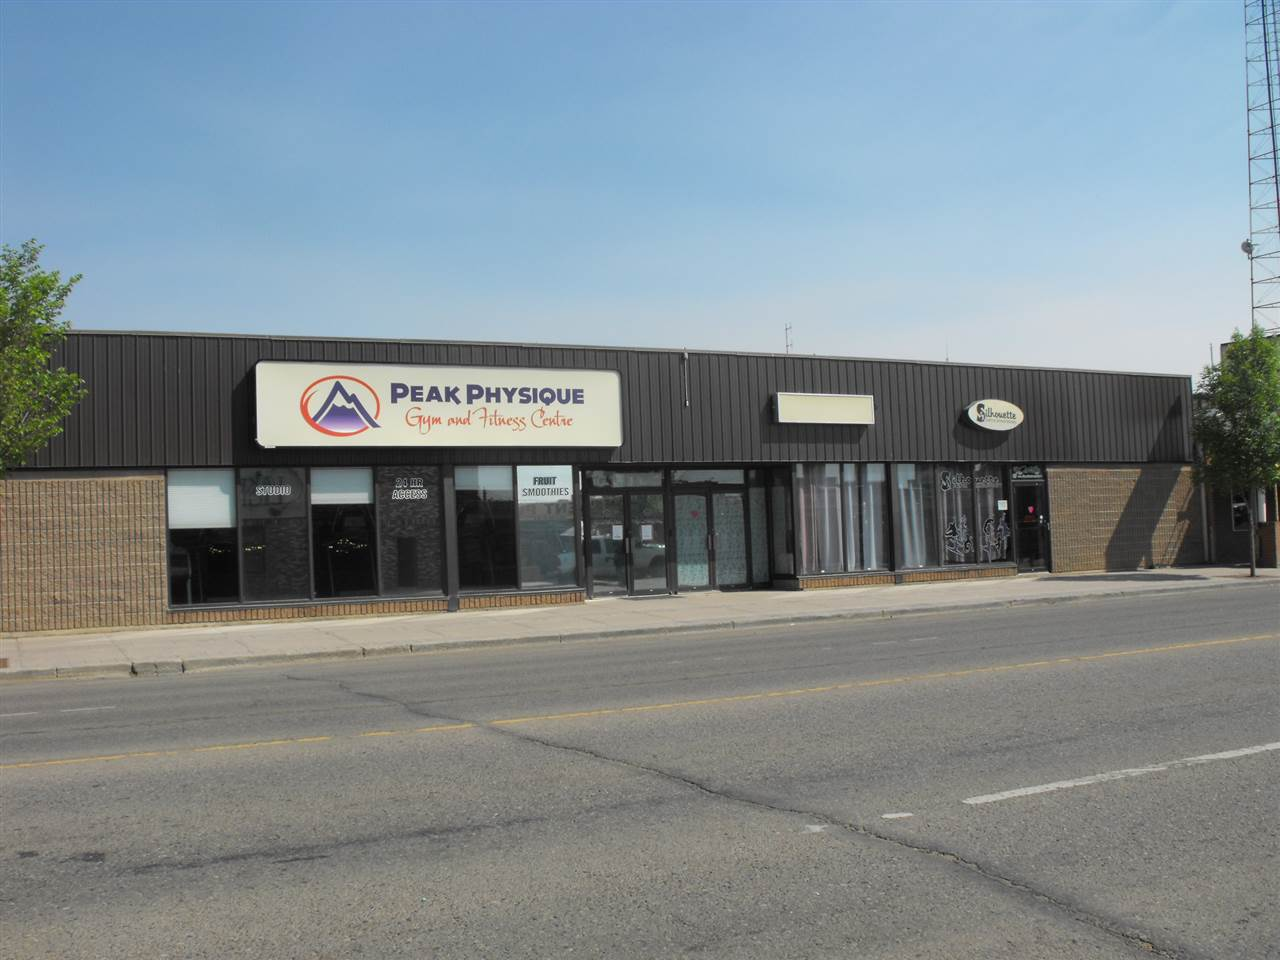 Retail Property for Sale, MLS® # E4160110